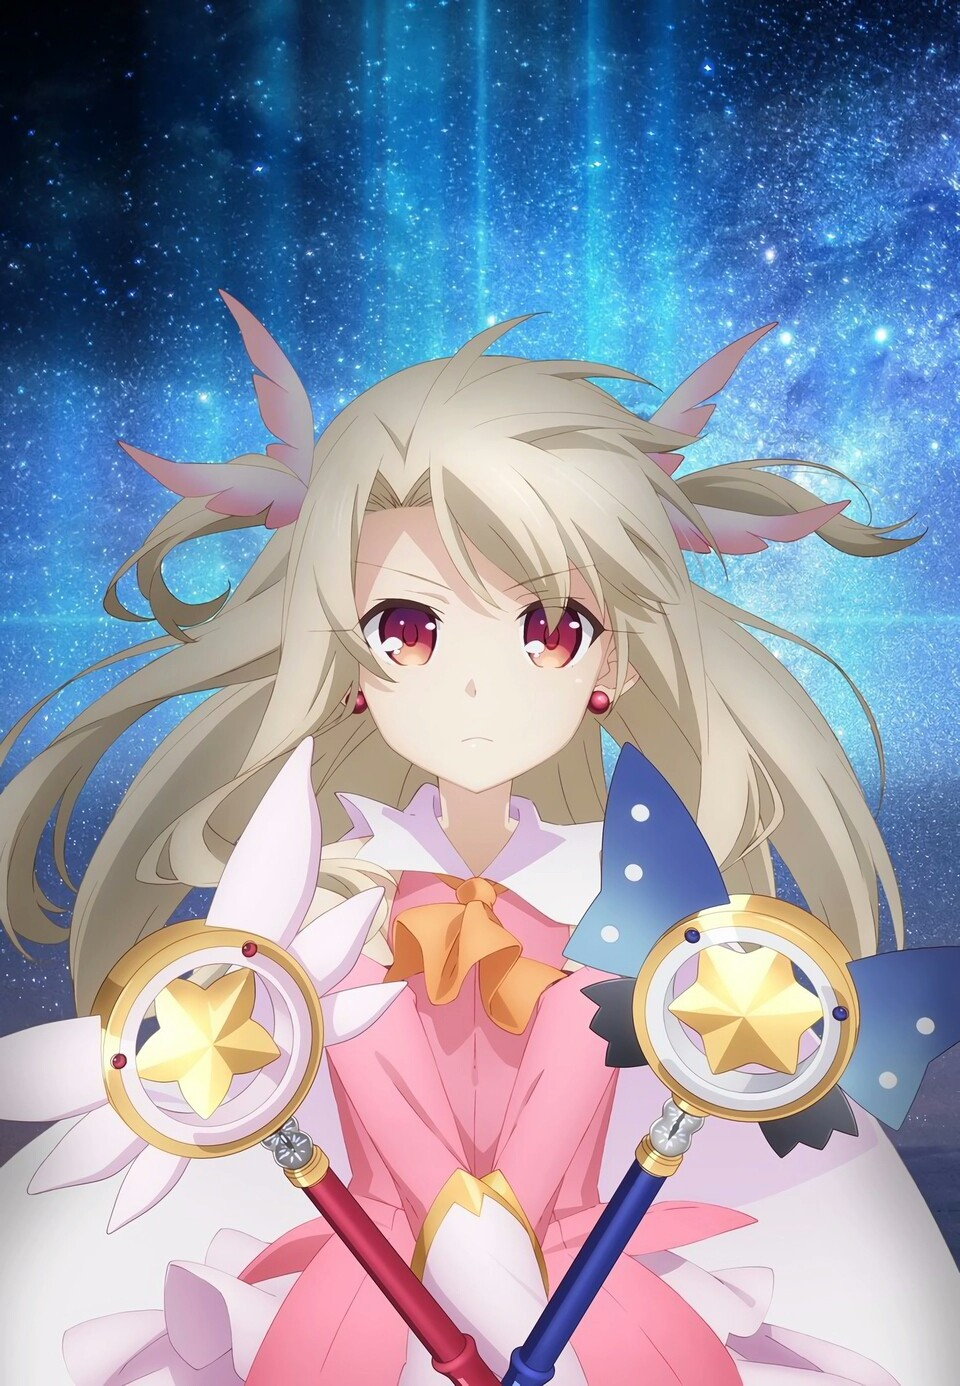 Fate/kaleid liner プリズマイリヤ 続編 Fate/kaleid liner 魔法少女伊莉雅 续篇